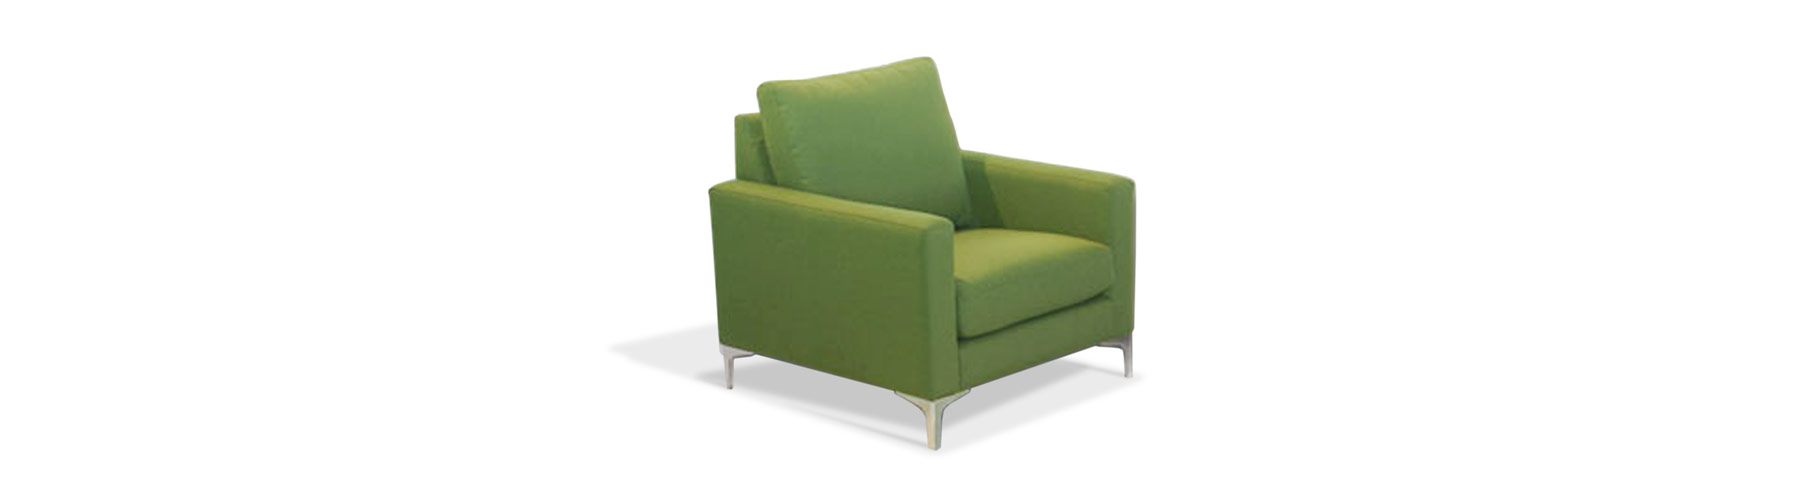 Lilly - Fauteuil William